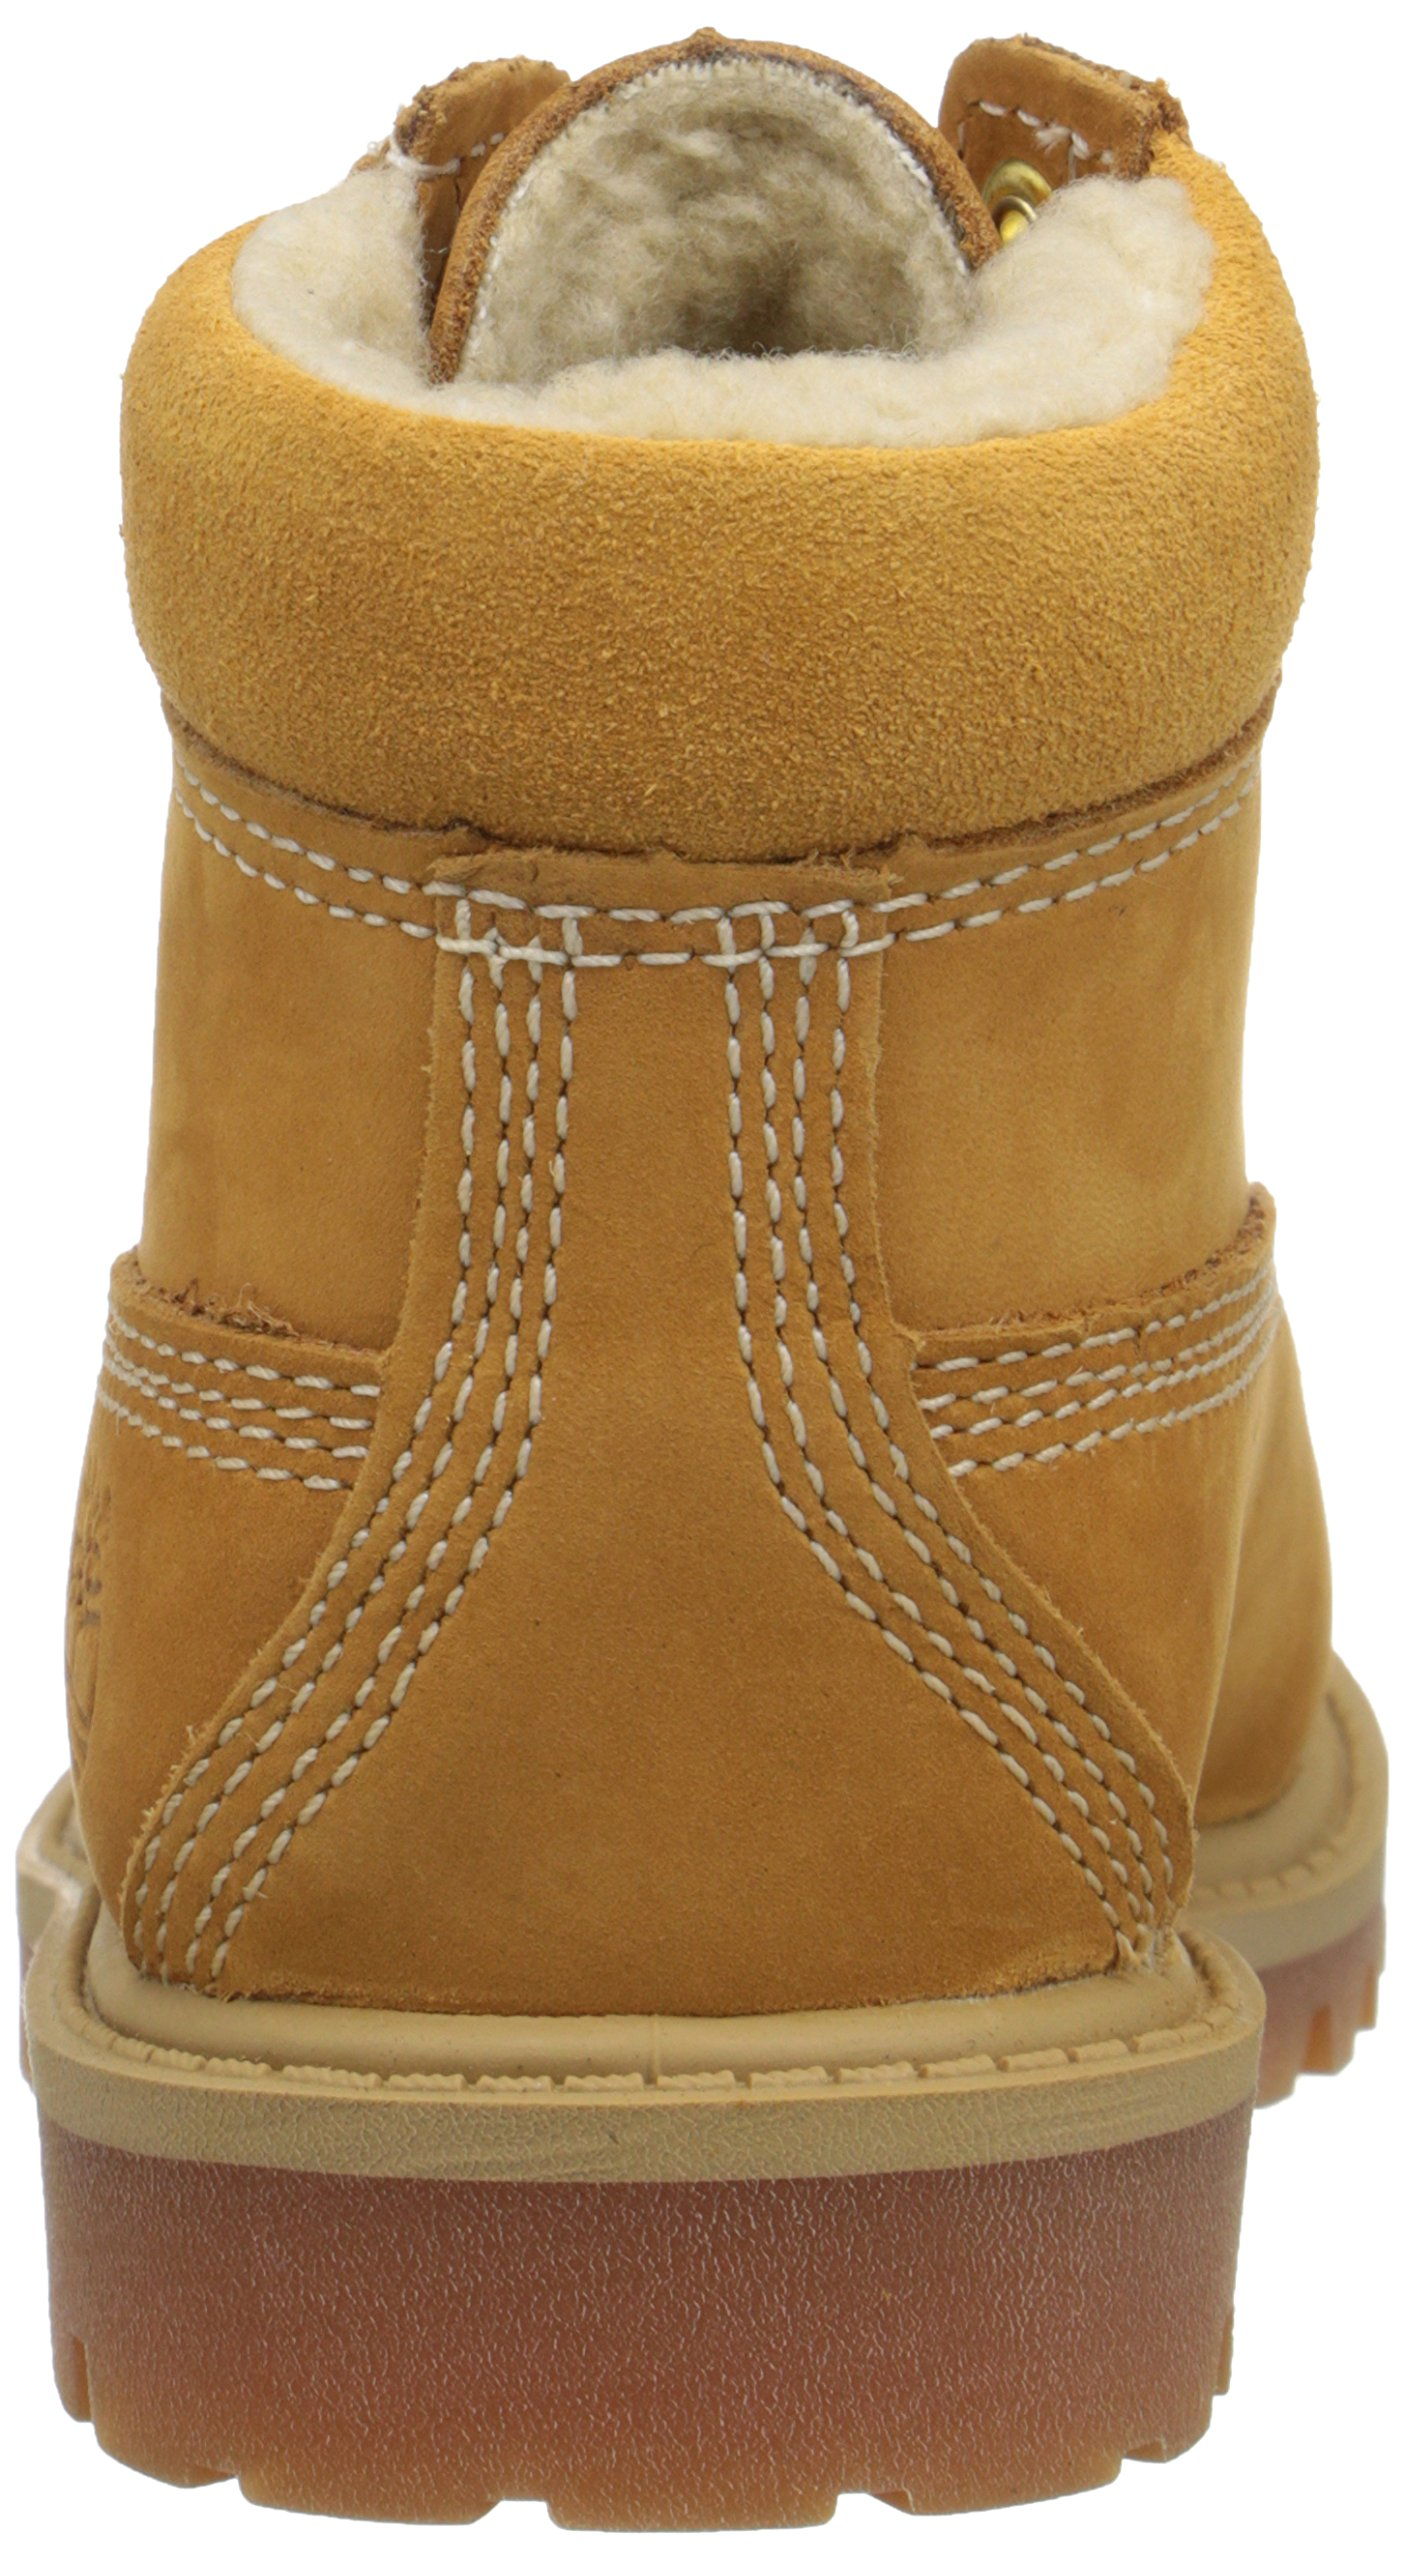 Timberland 6 Inch Premium With Faux Shearling Boot (Toddler/Little Kid/Big Kid), Wheat Nubuck, 4 M US Big Kid by Timberland (Image #2)